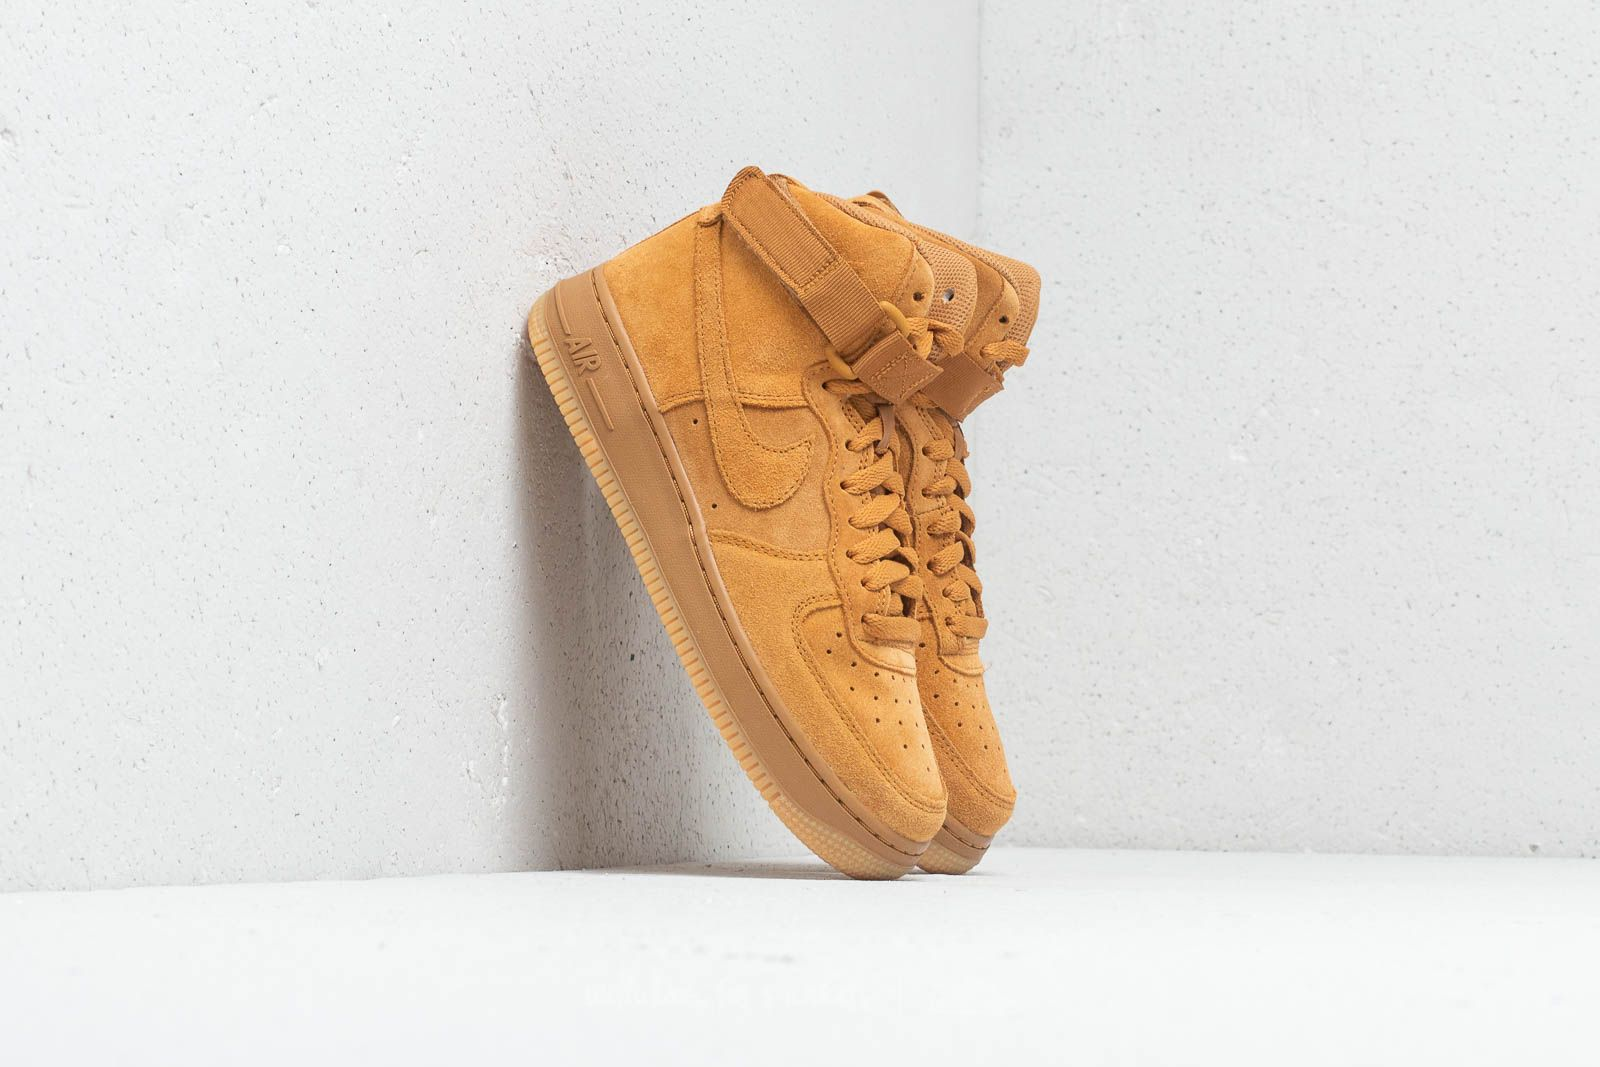 Nike Air Force 1 High LV8 (GS) Wheat Wheat Gum Light Brown | Footshop